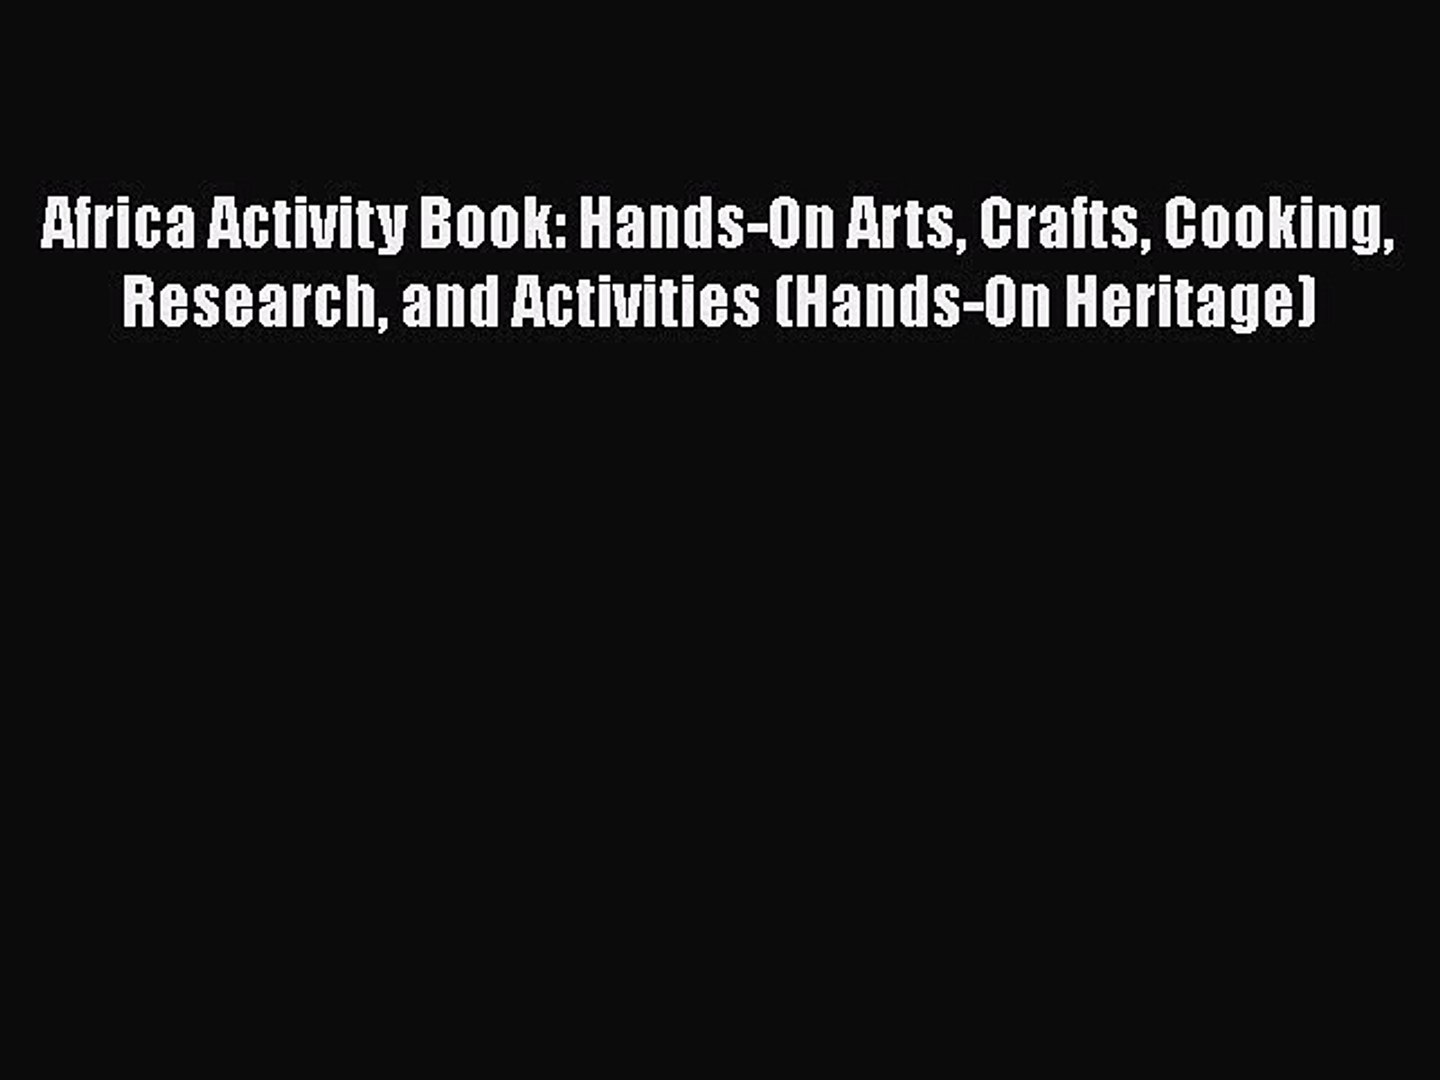 Read Africa Activity Book: Hands-On Arts Crafts Cooking Research and Activities (Hands-On Heritage)